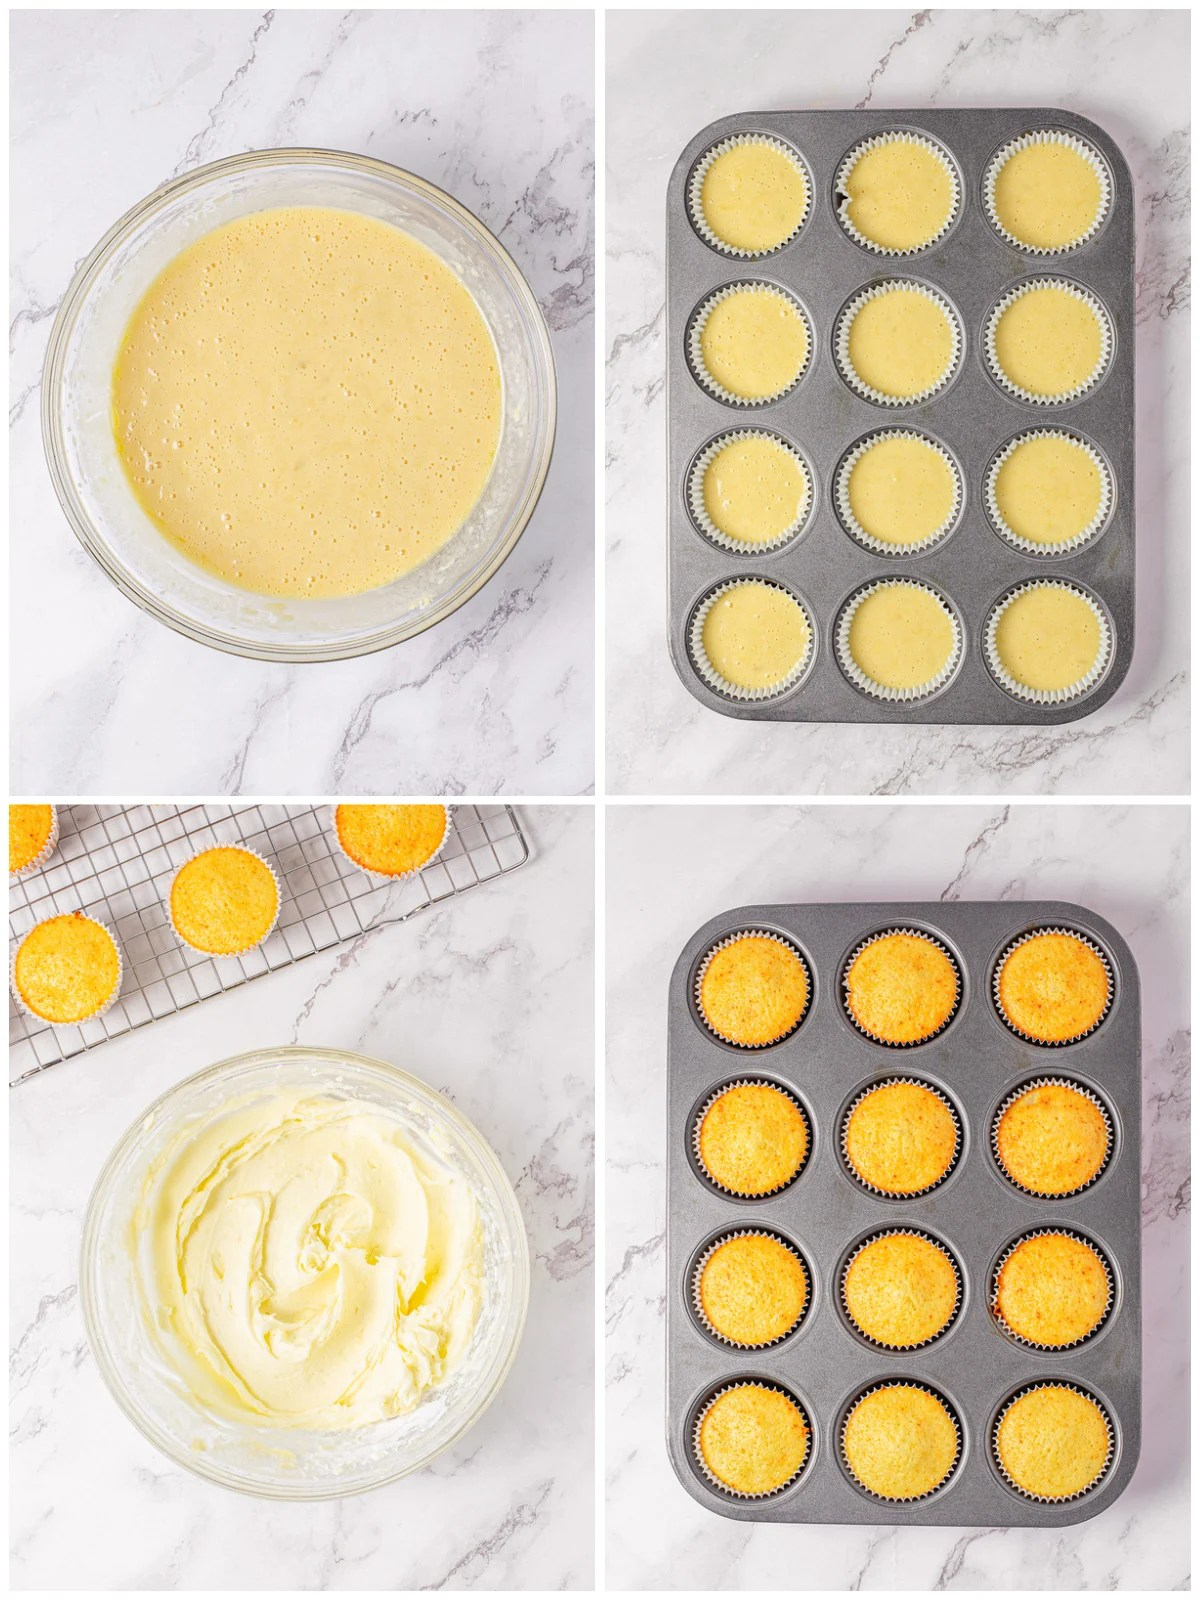 Step by step photos on how to make Pina Colada Cupcakes